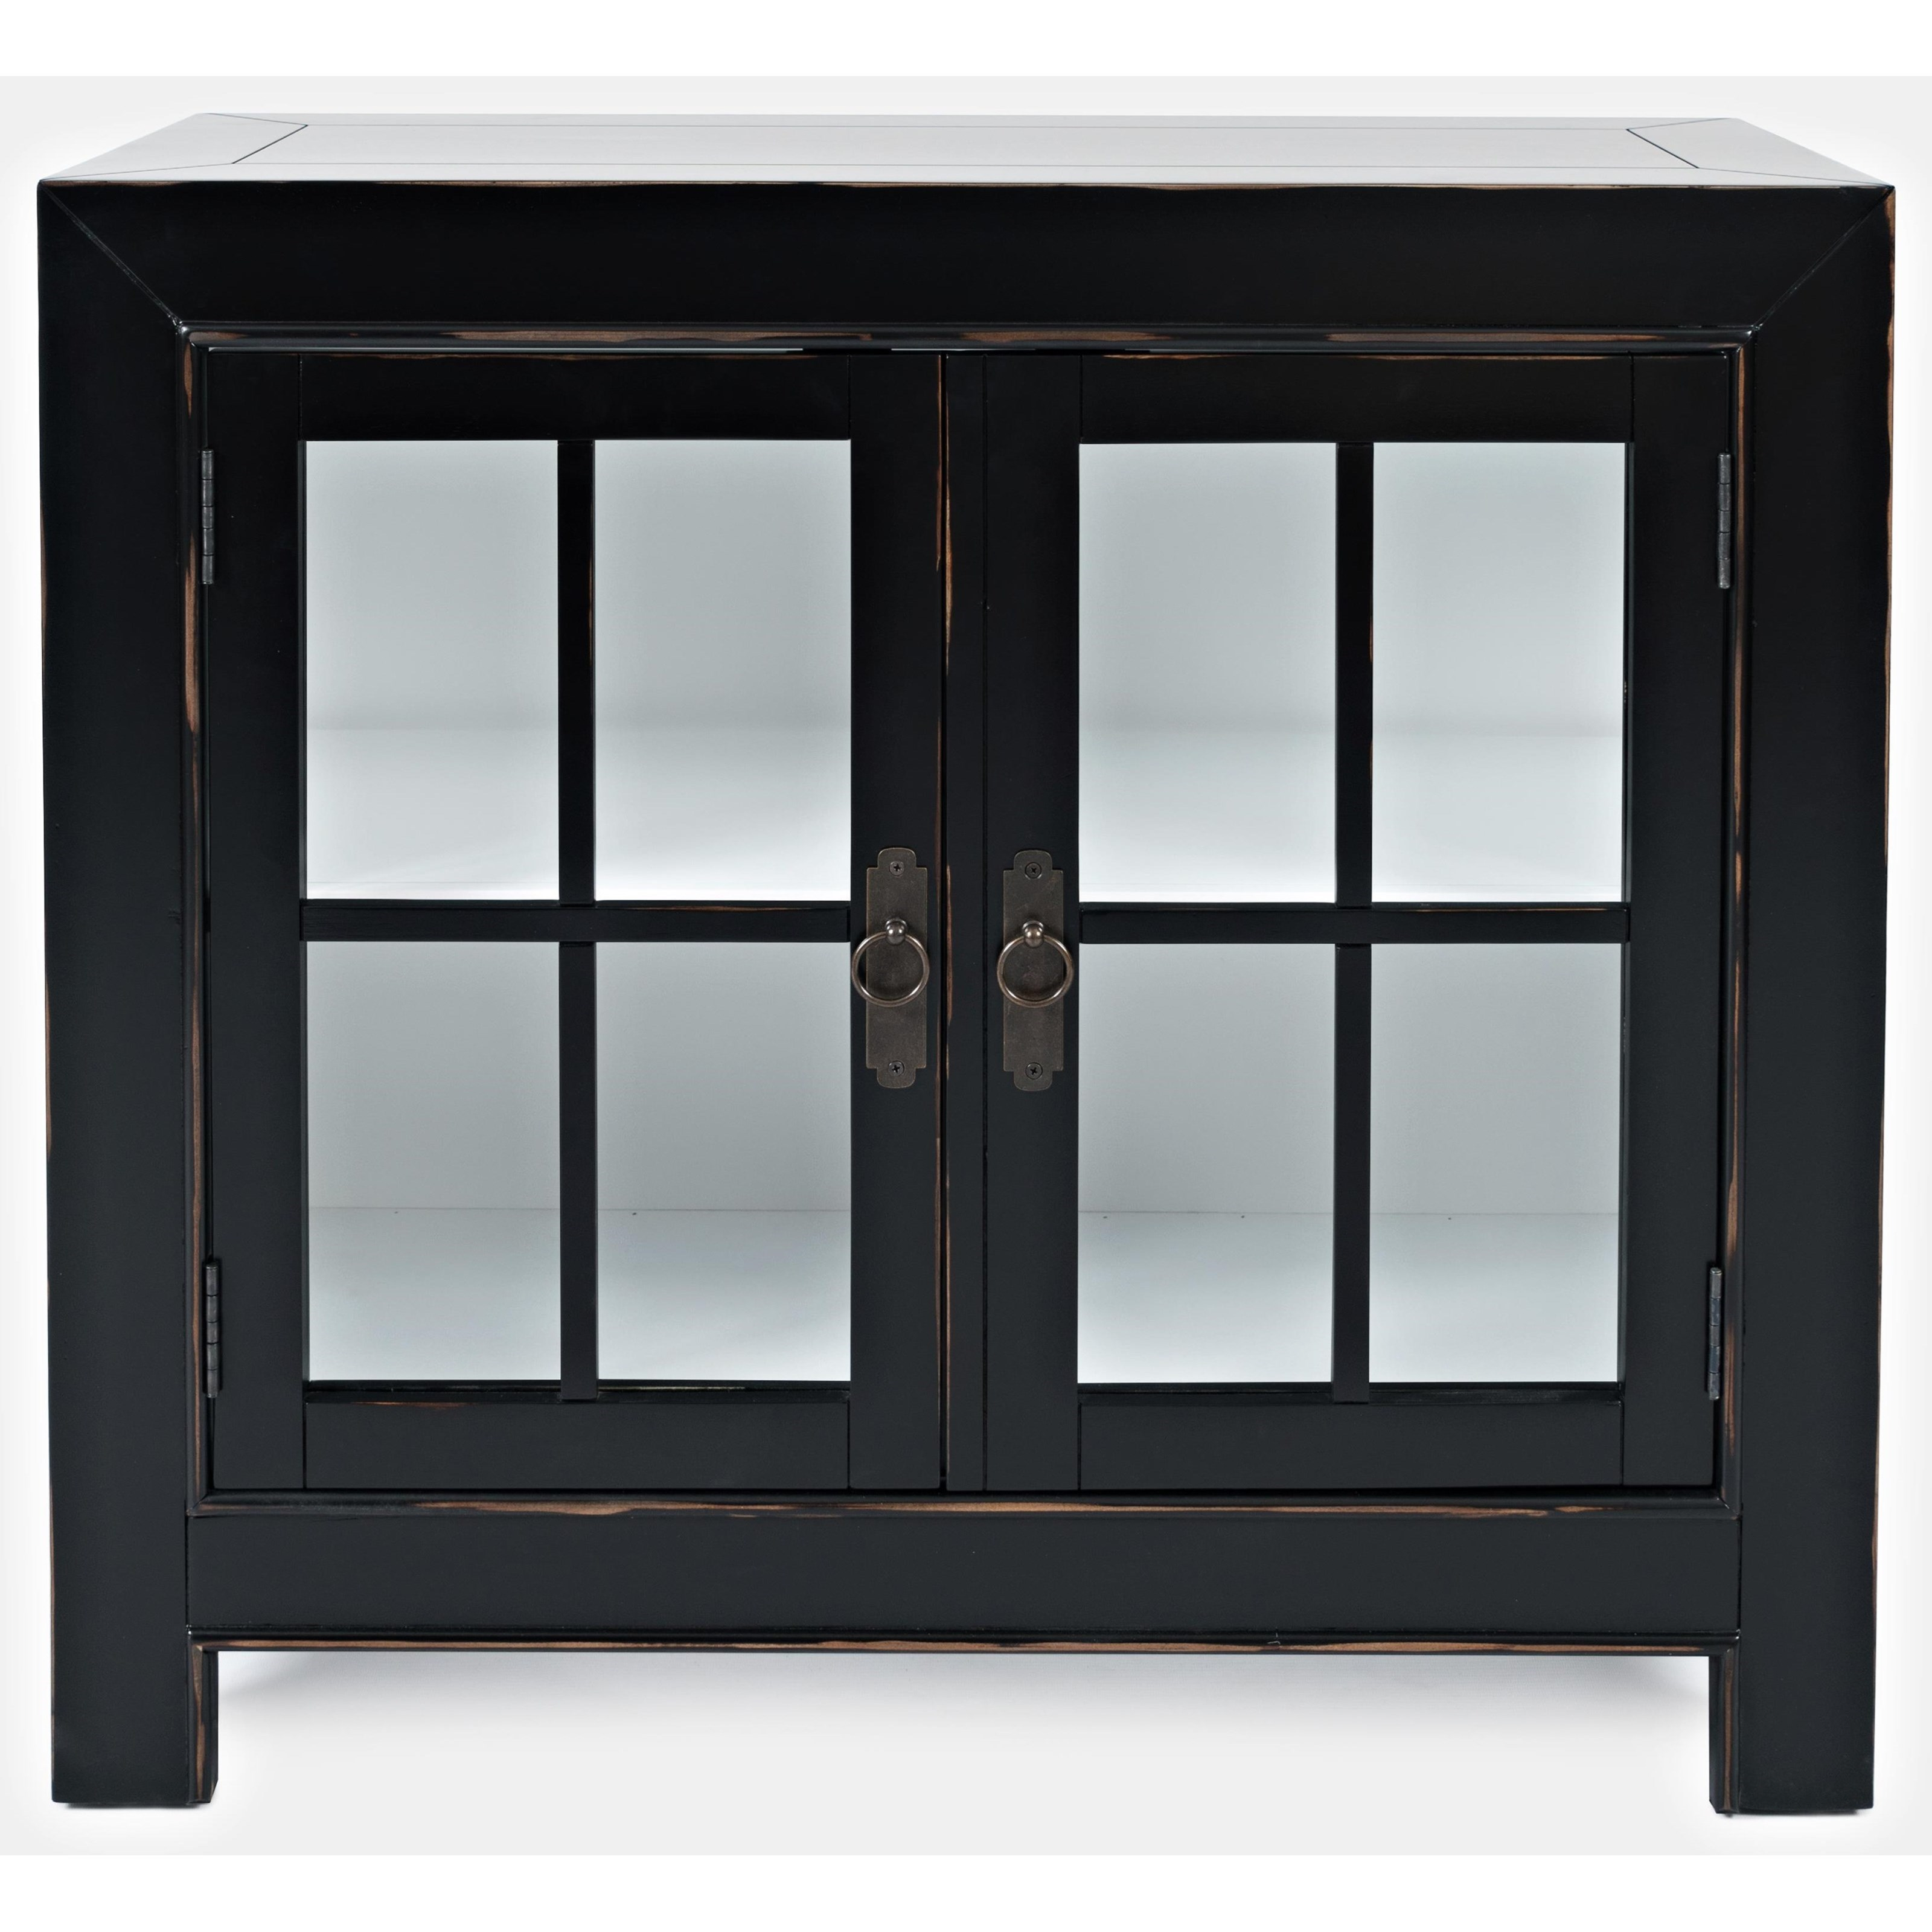 Aquitaine Accent Cabinet by Jofran at Value City Furniture